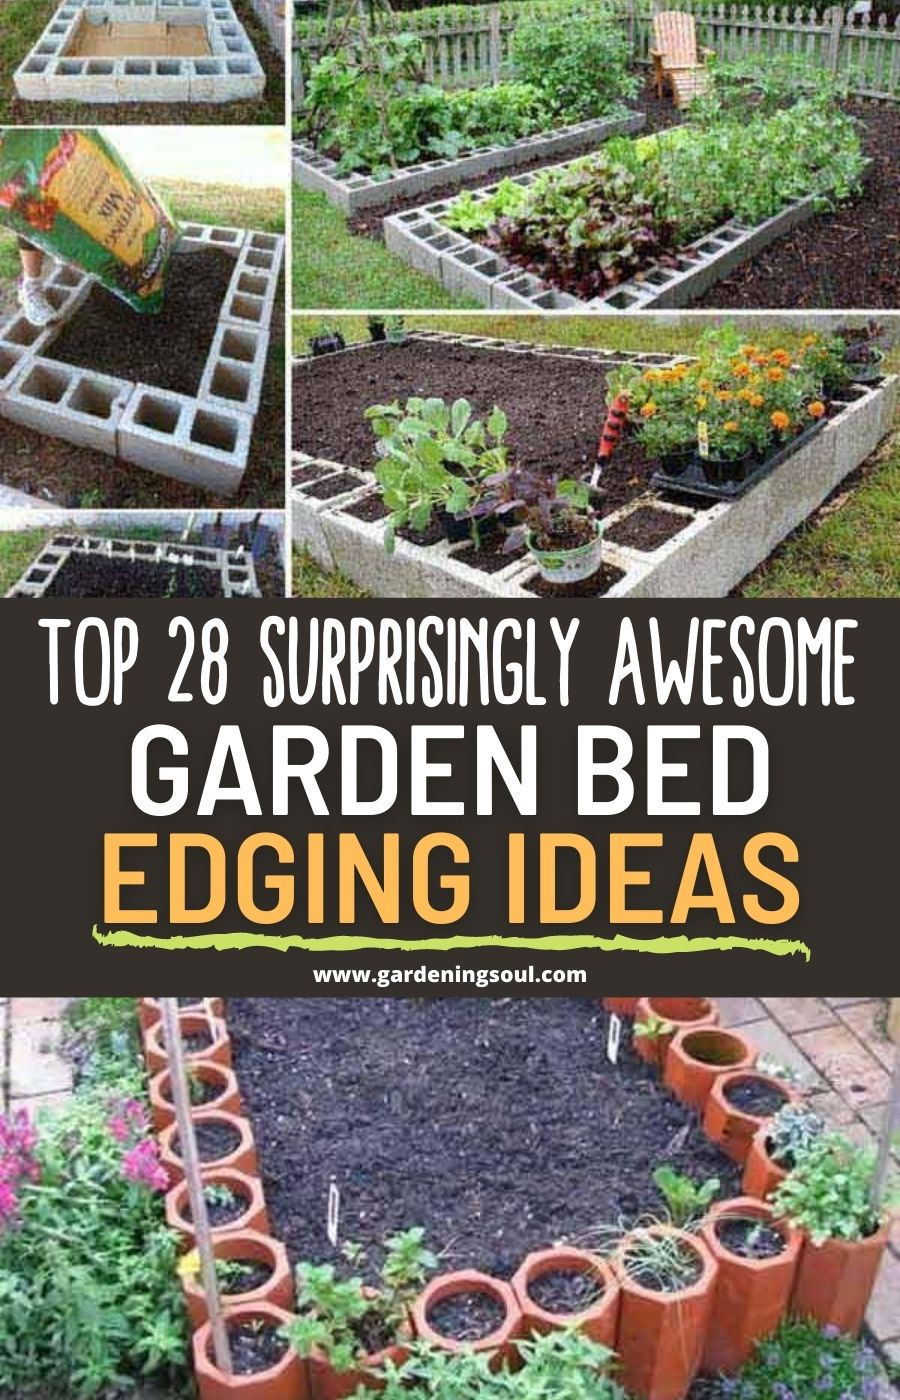 Top 28 Surprisingly Awesome Garden Bed Edging Ideas Garden Beds Garden Ideas To Make Raised Garden